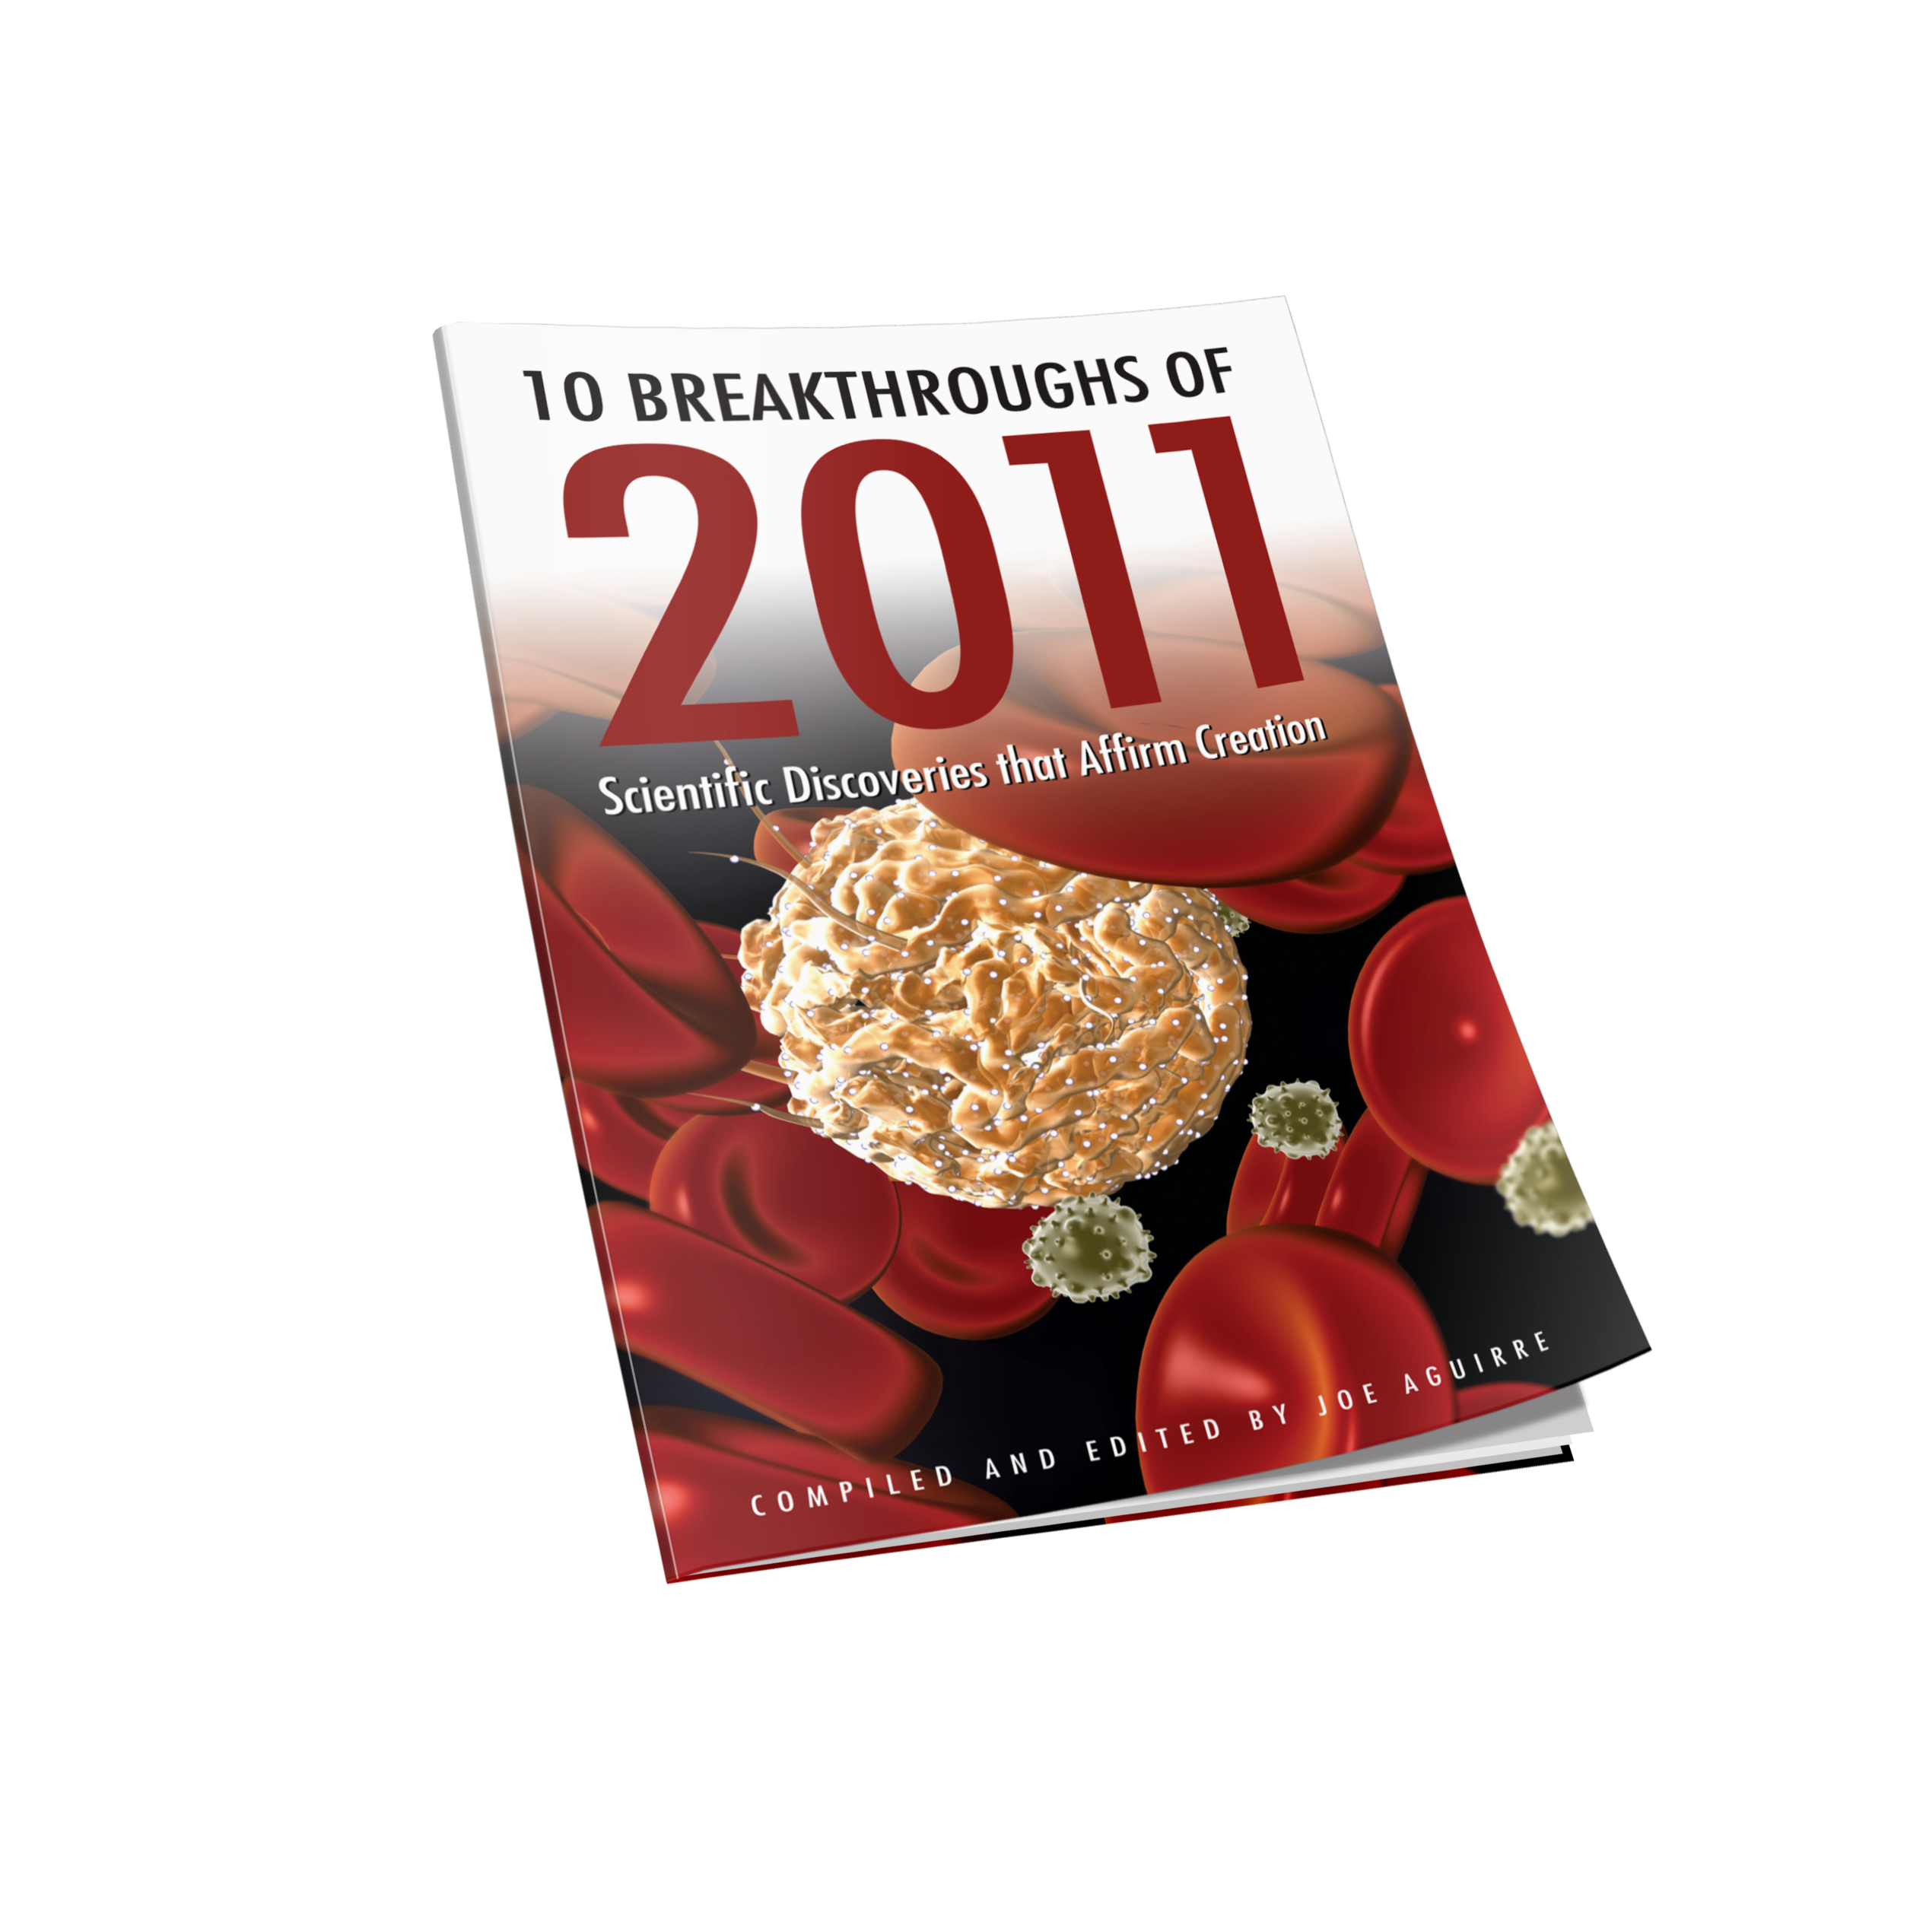 10 Breakthroughs of 2011 Image